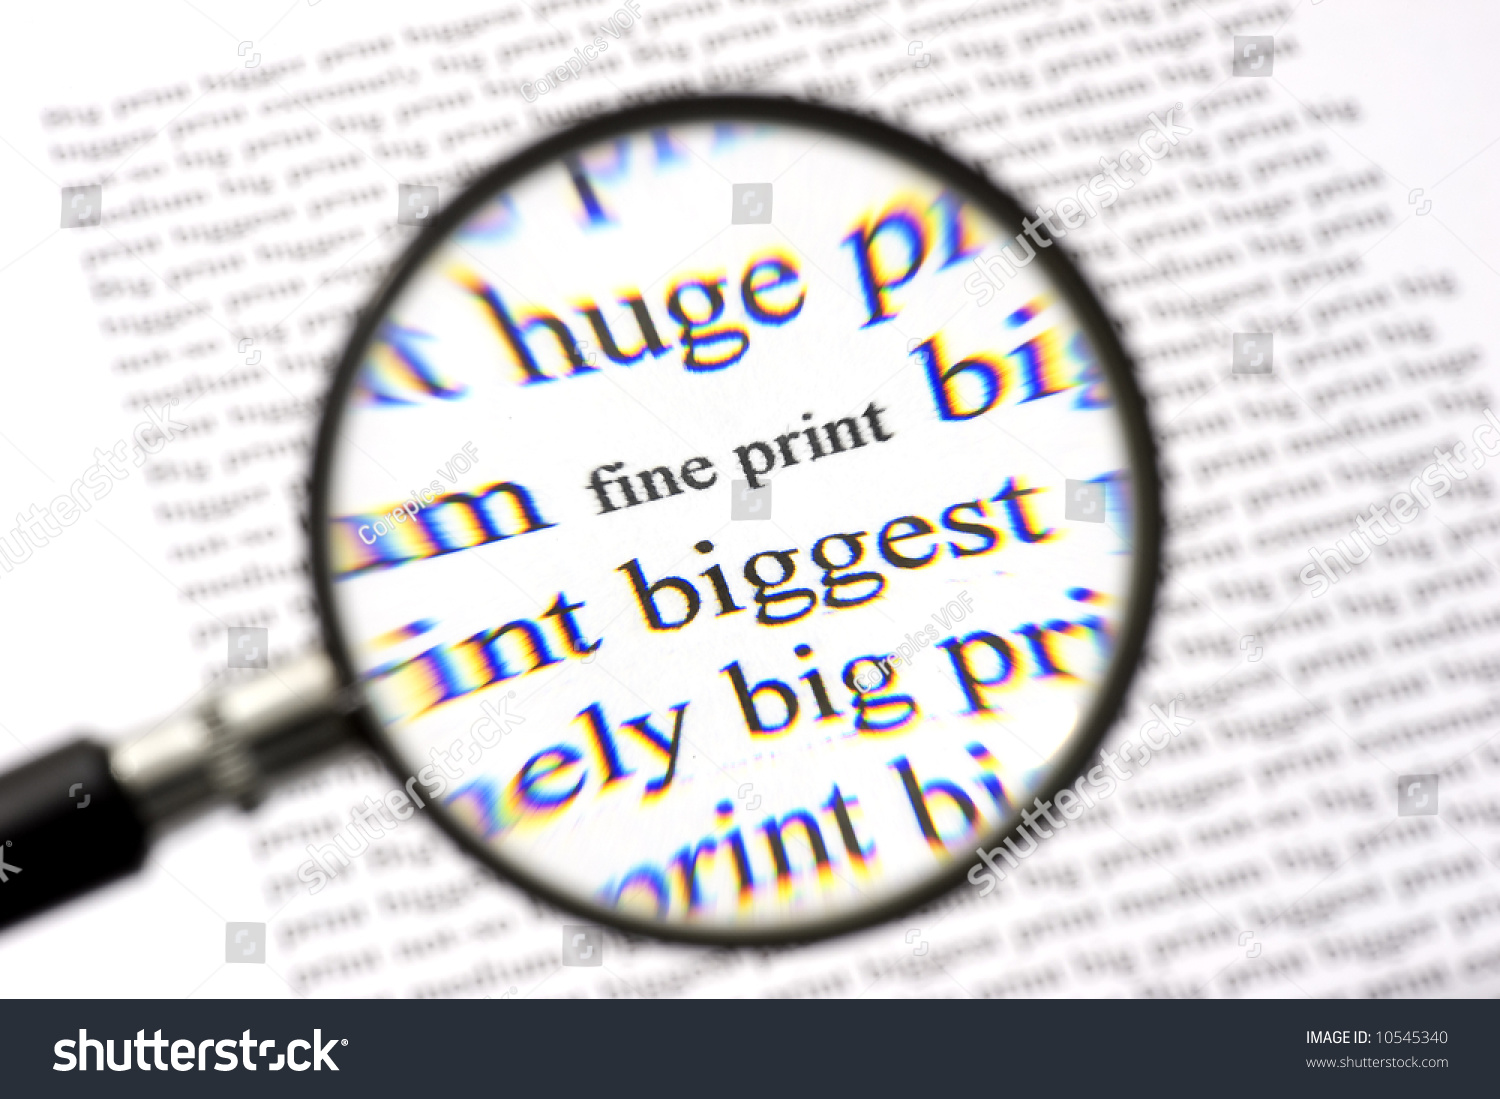 stock-photo-a-magnifying-glass-zooming-in-on-the-text-fine-print-on-a-sheet-of-paper-surrounde...jpg